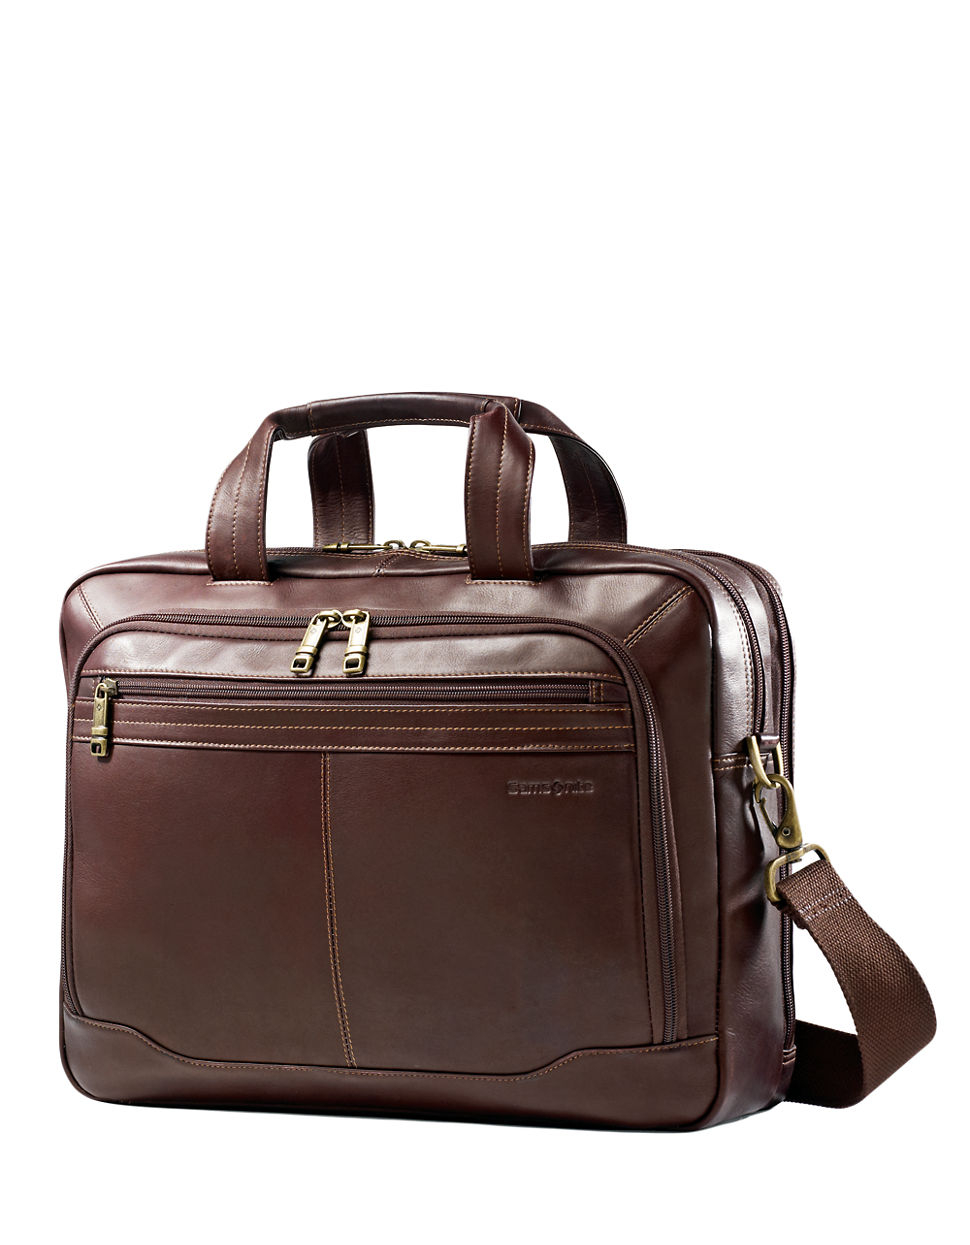 Samsonite Brown Leather Briefcase0185-477321139 in Brown ...